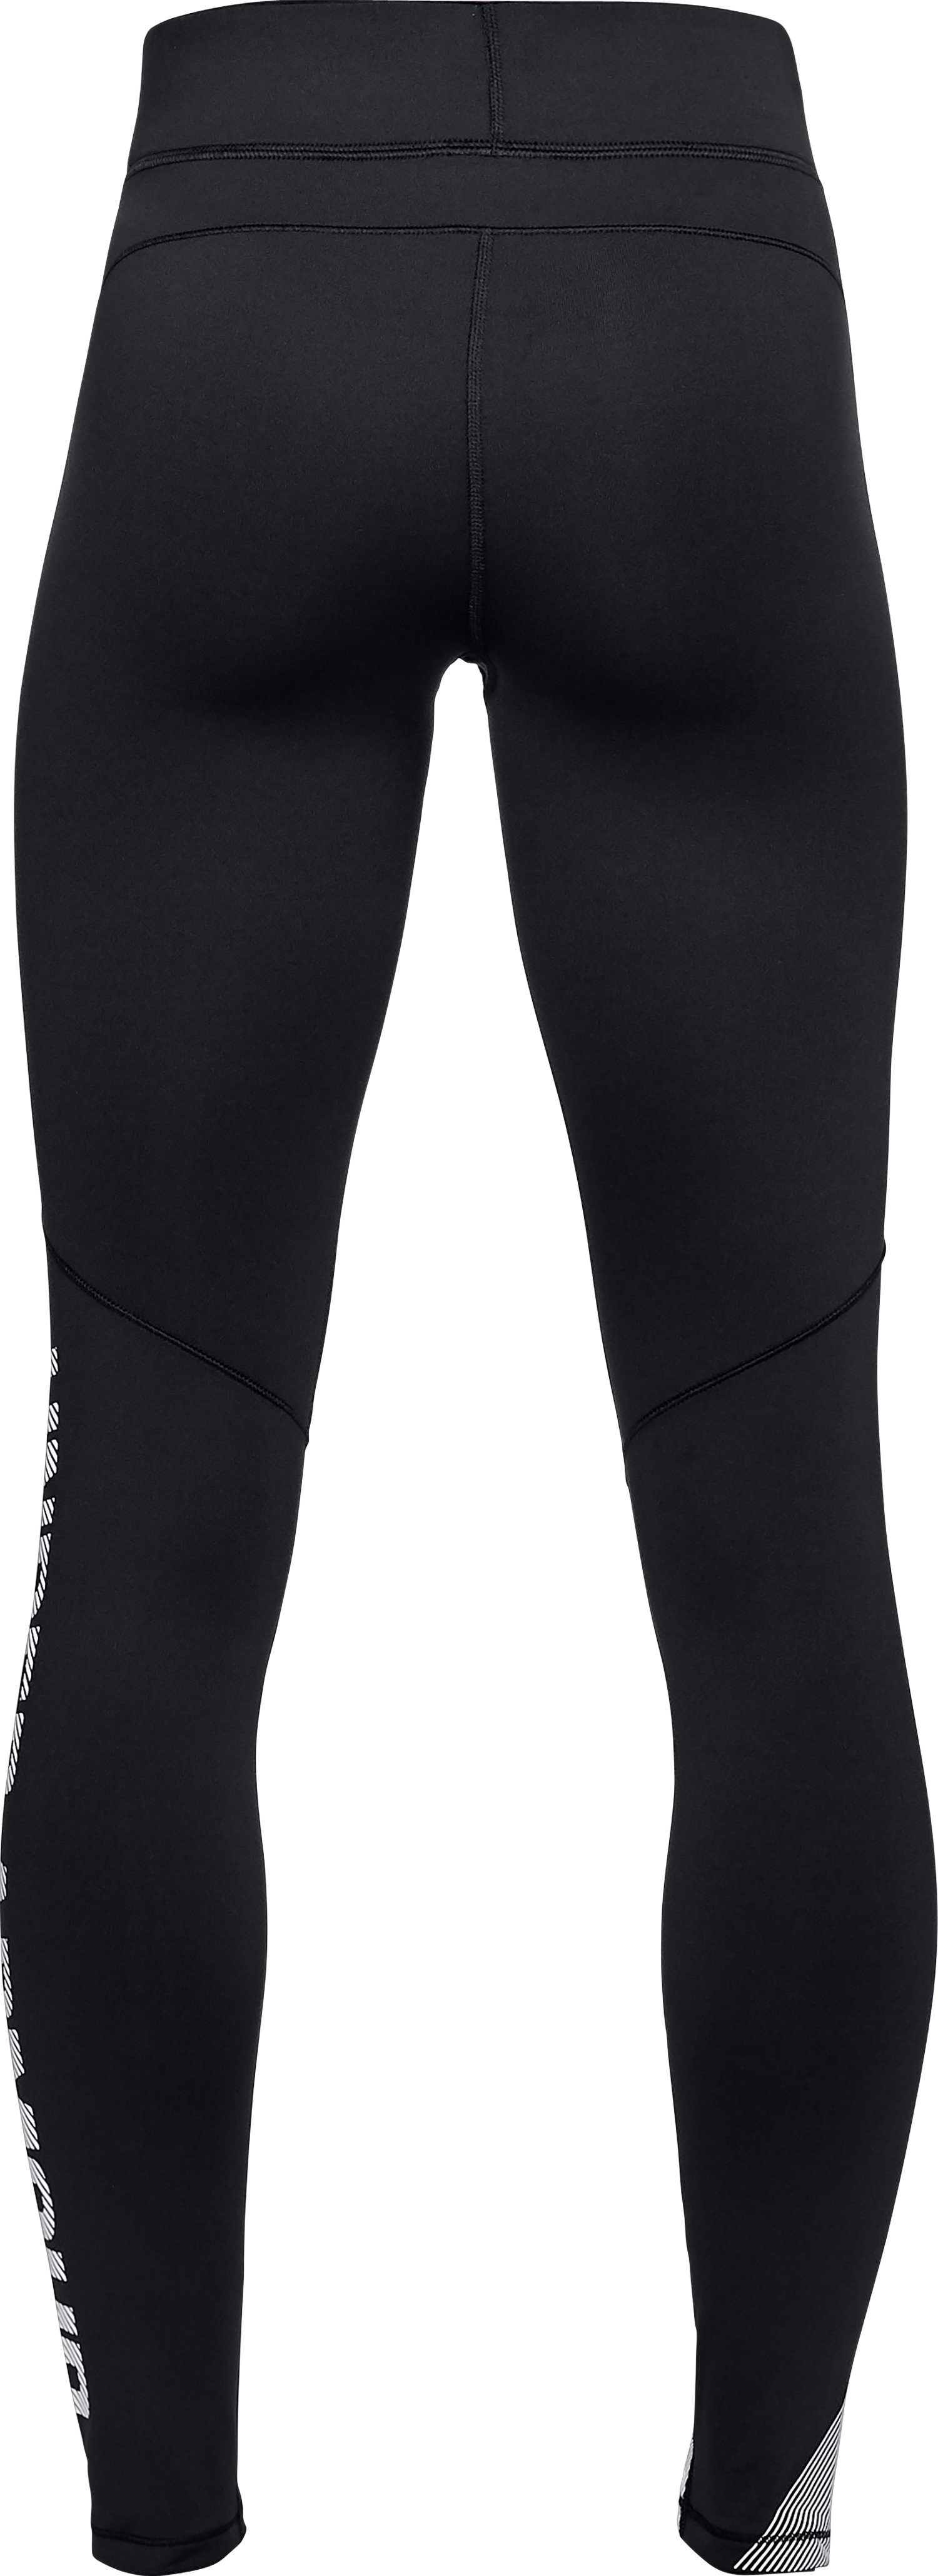 Women's ColdGear® Armour Leggings, Black , undefined